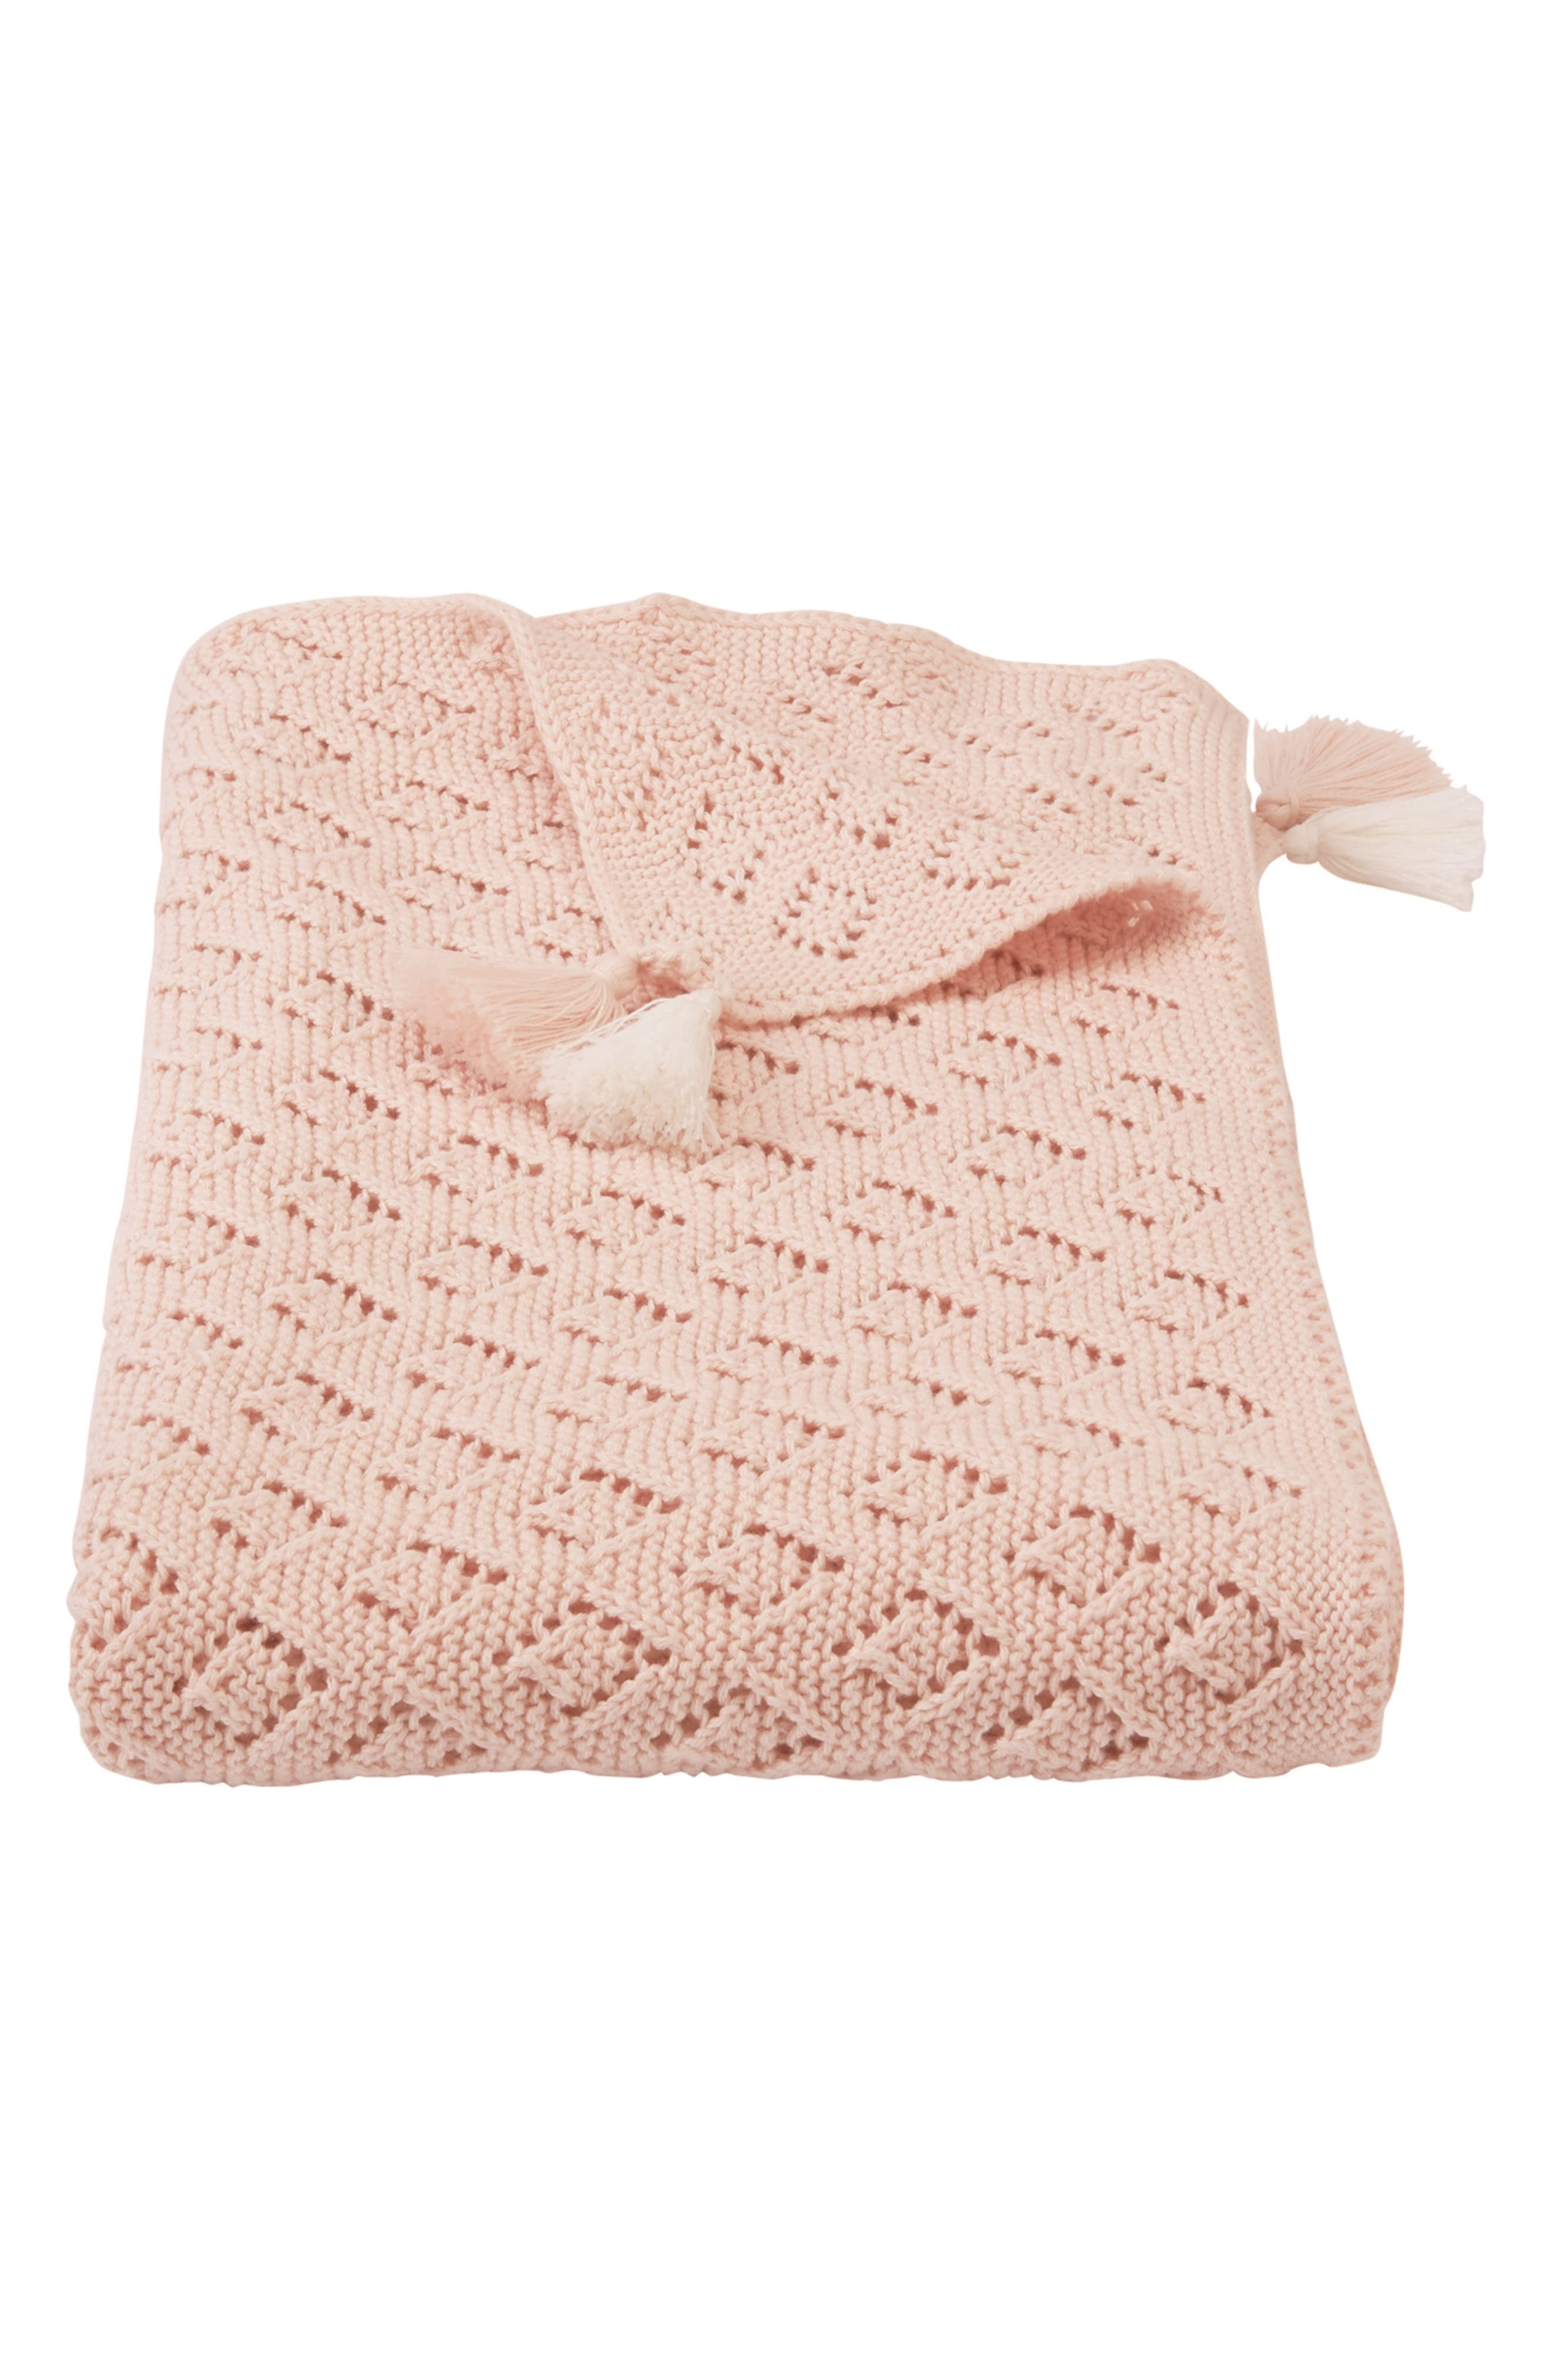 Pointelle Knit Blanket,                             Main thumbnail 1, color,                             650